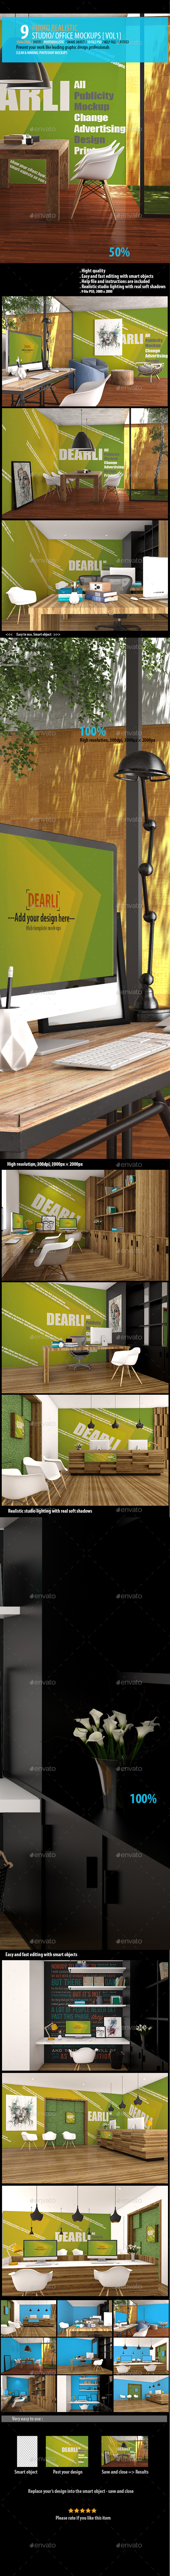 GraphicRiver Studio Office Mockups [Vol1] 10341155